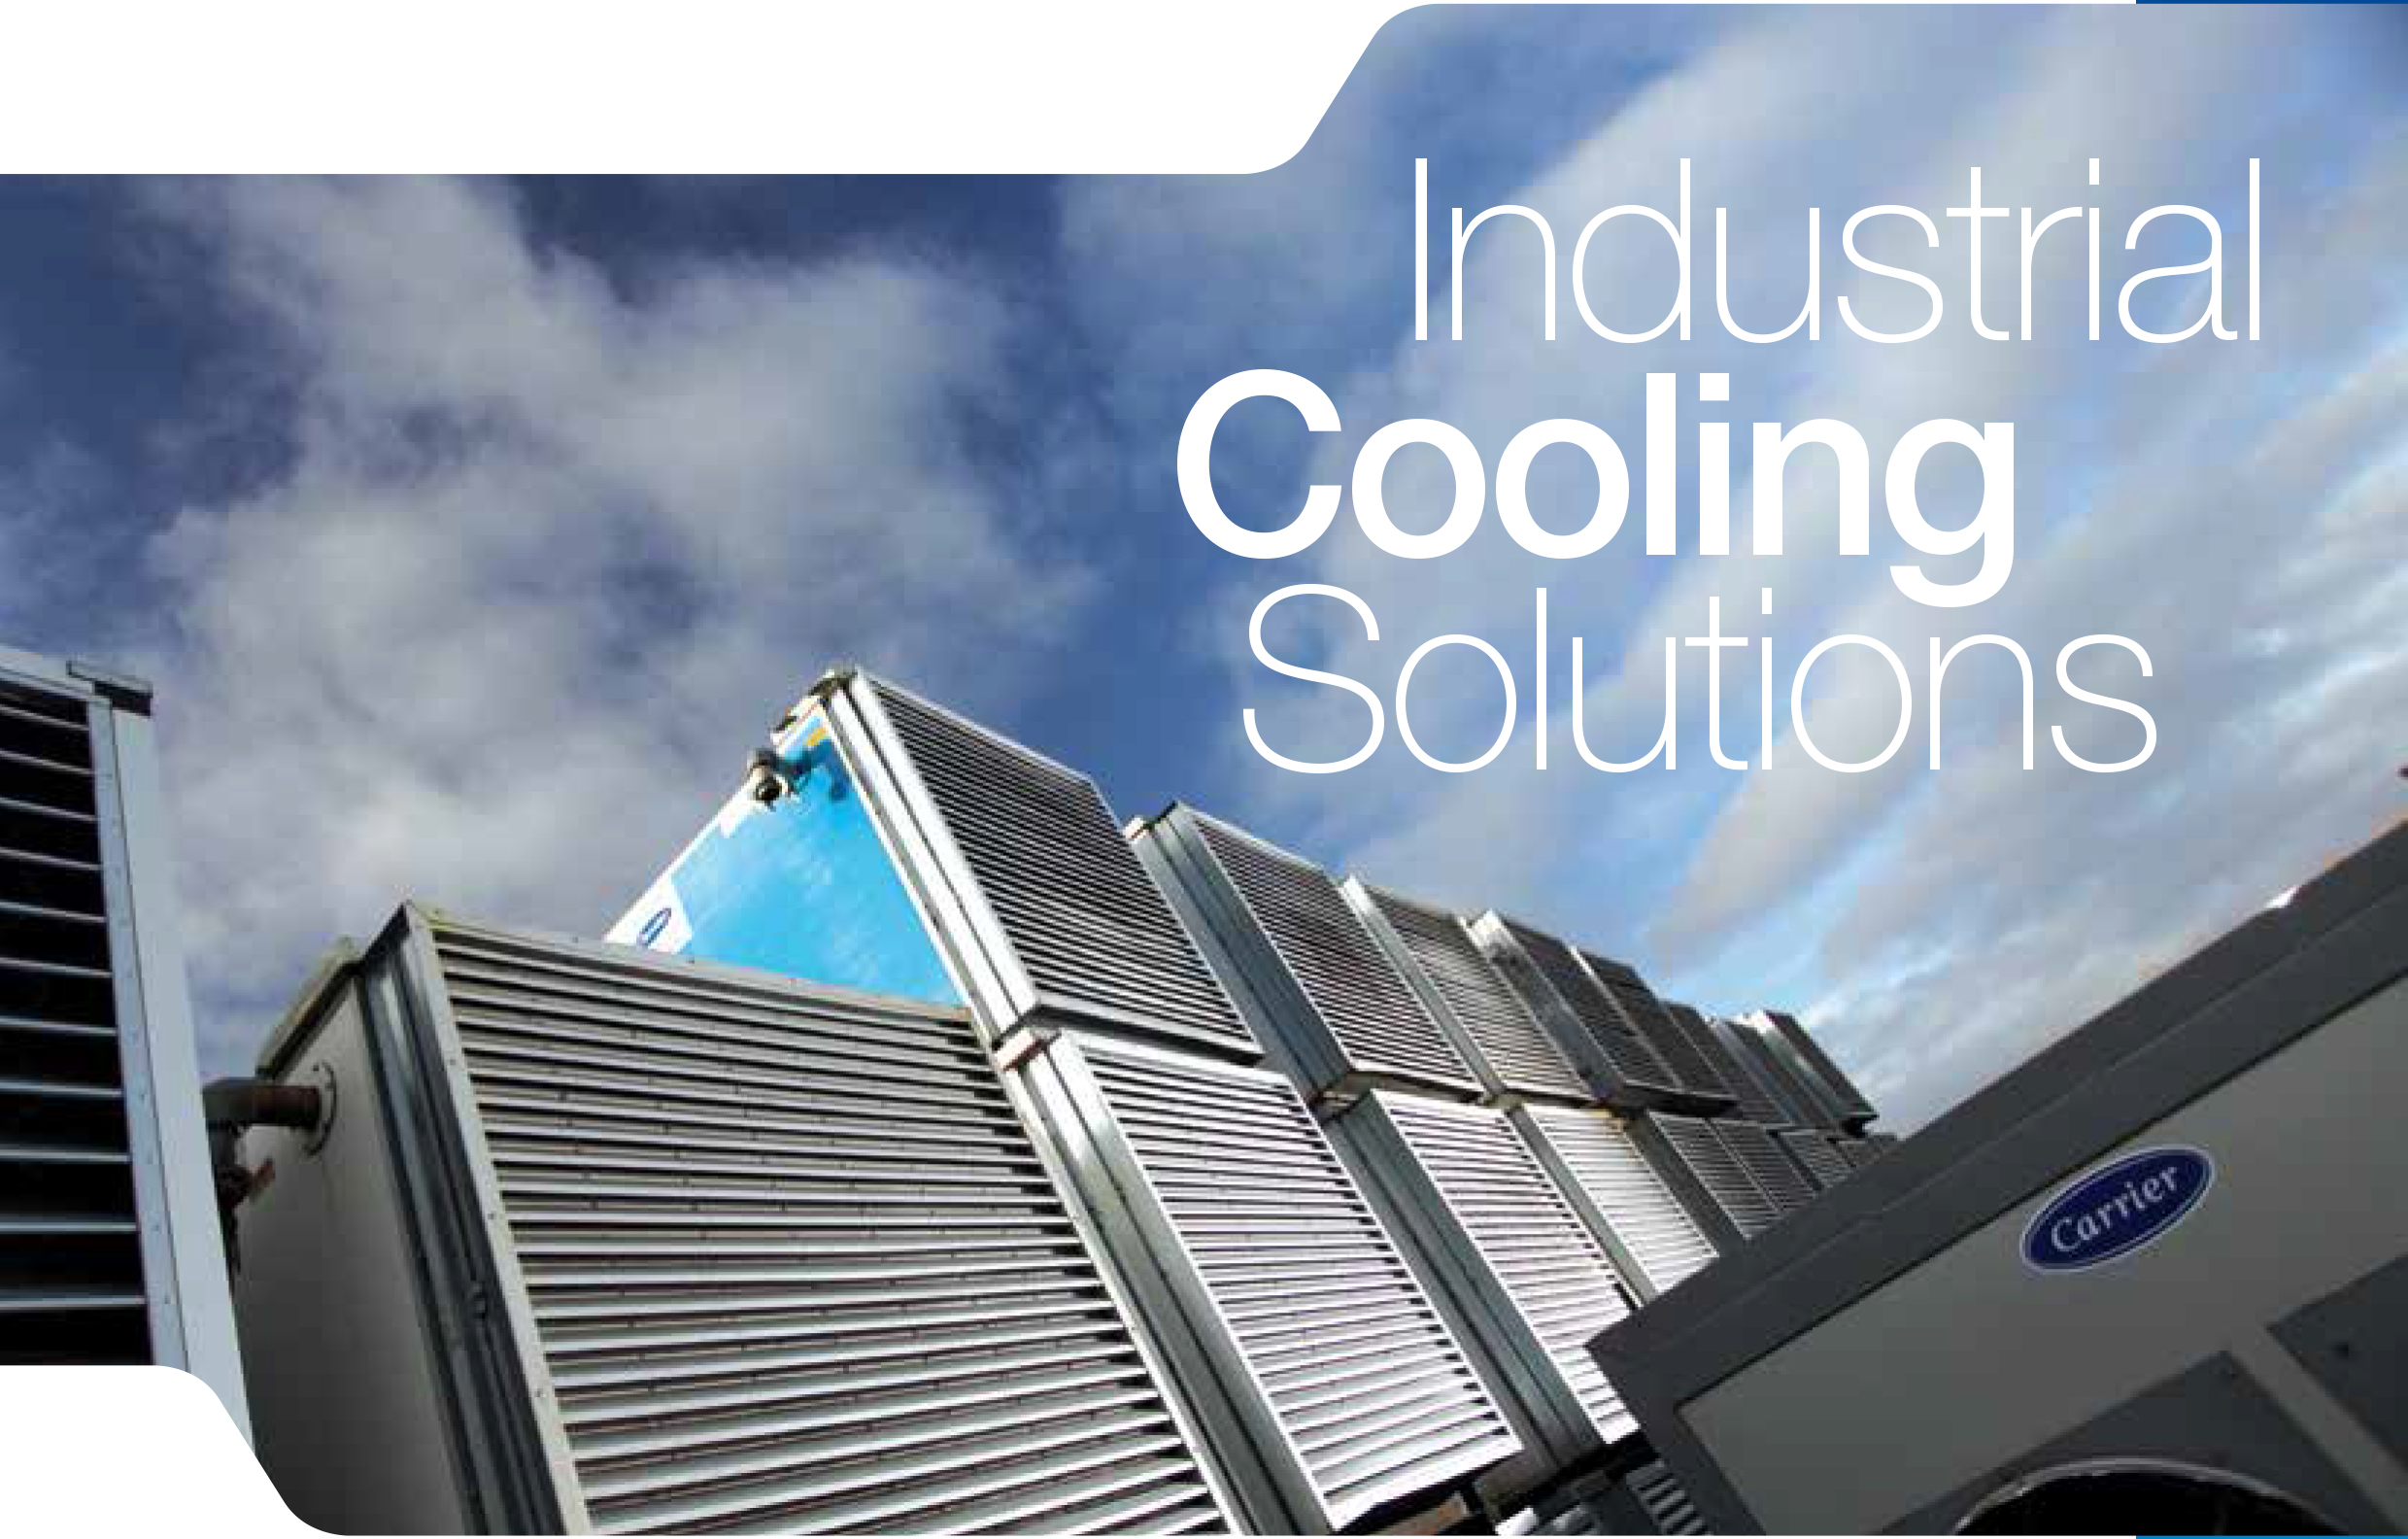 carrier-rental-systems-cooling-brochure-5